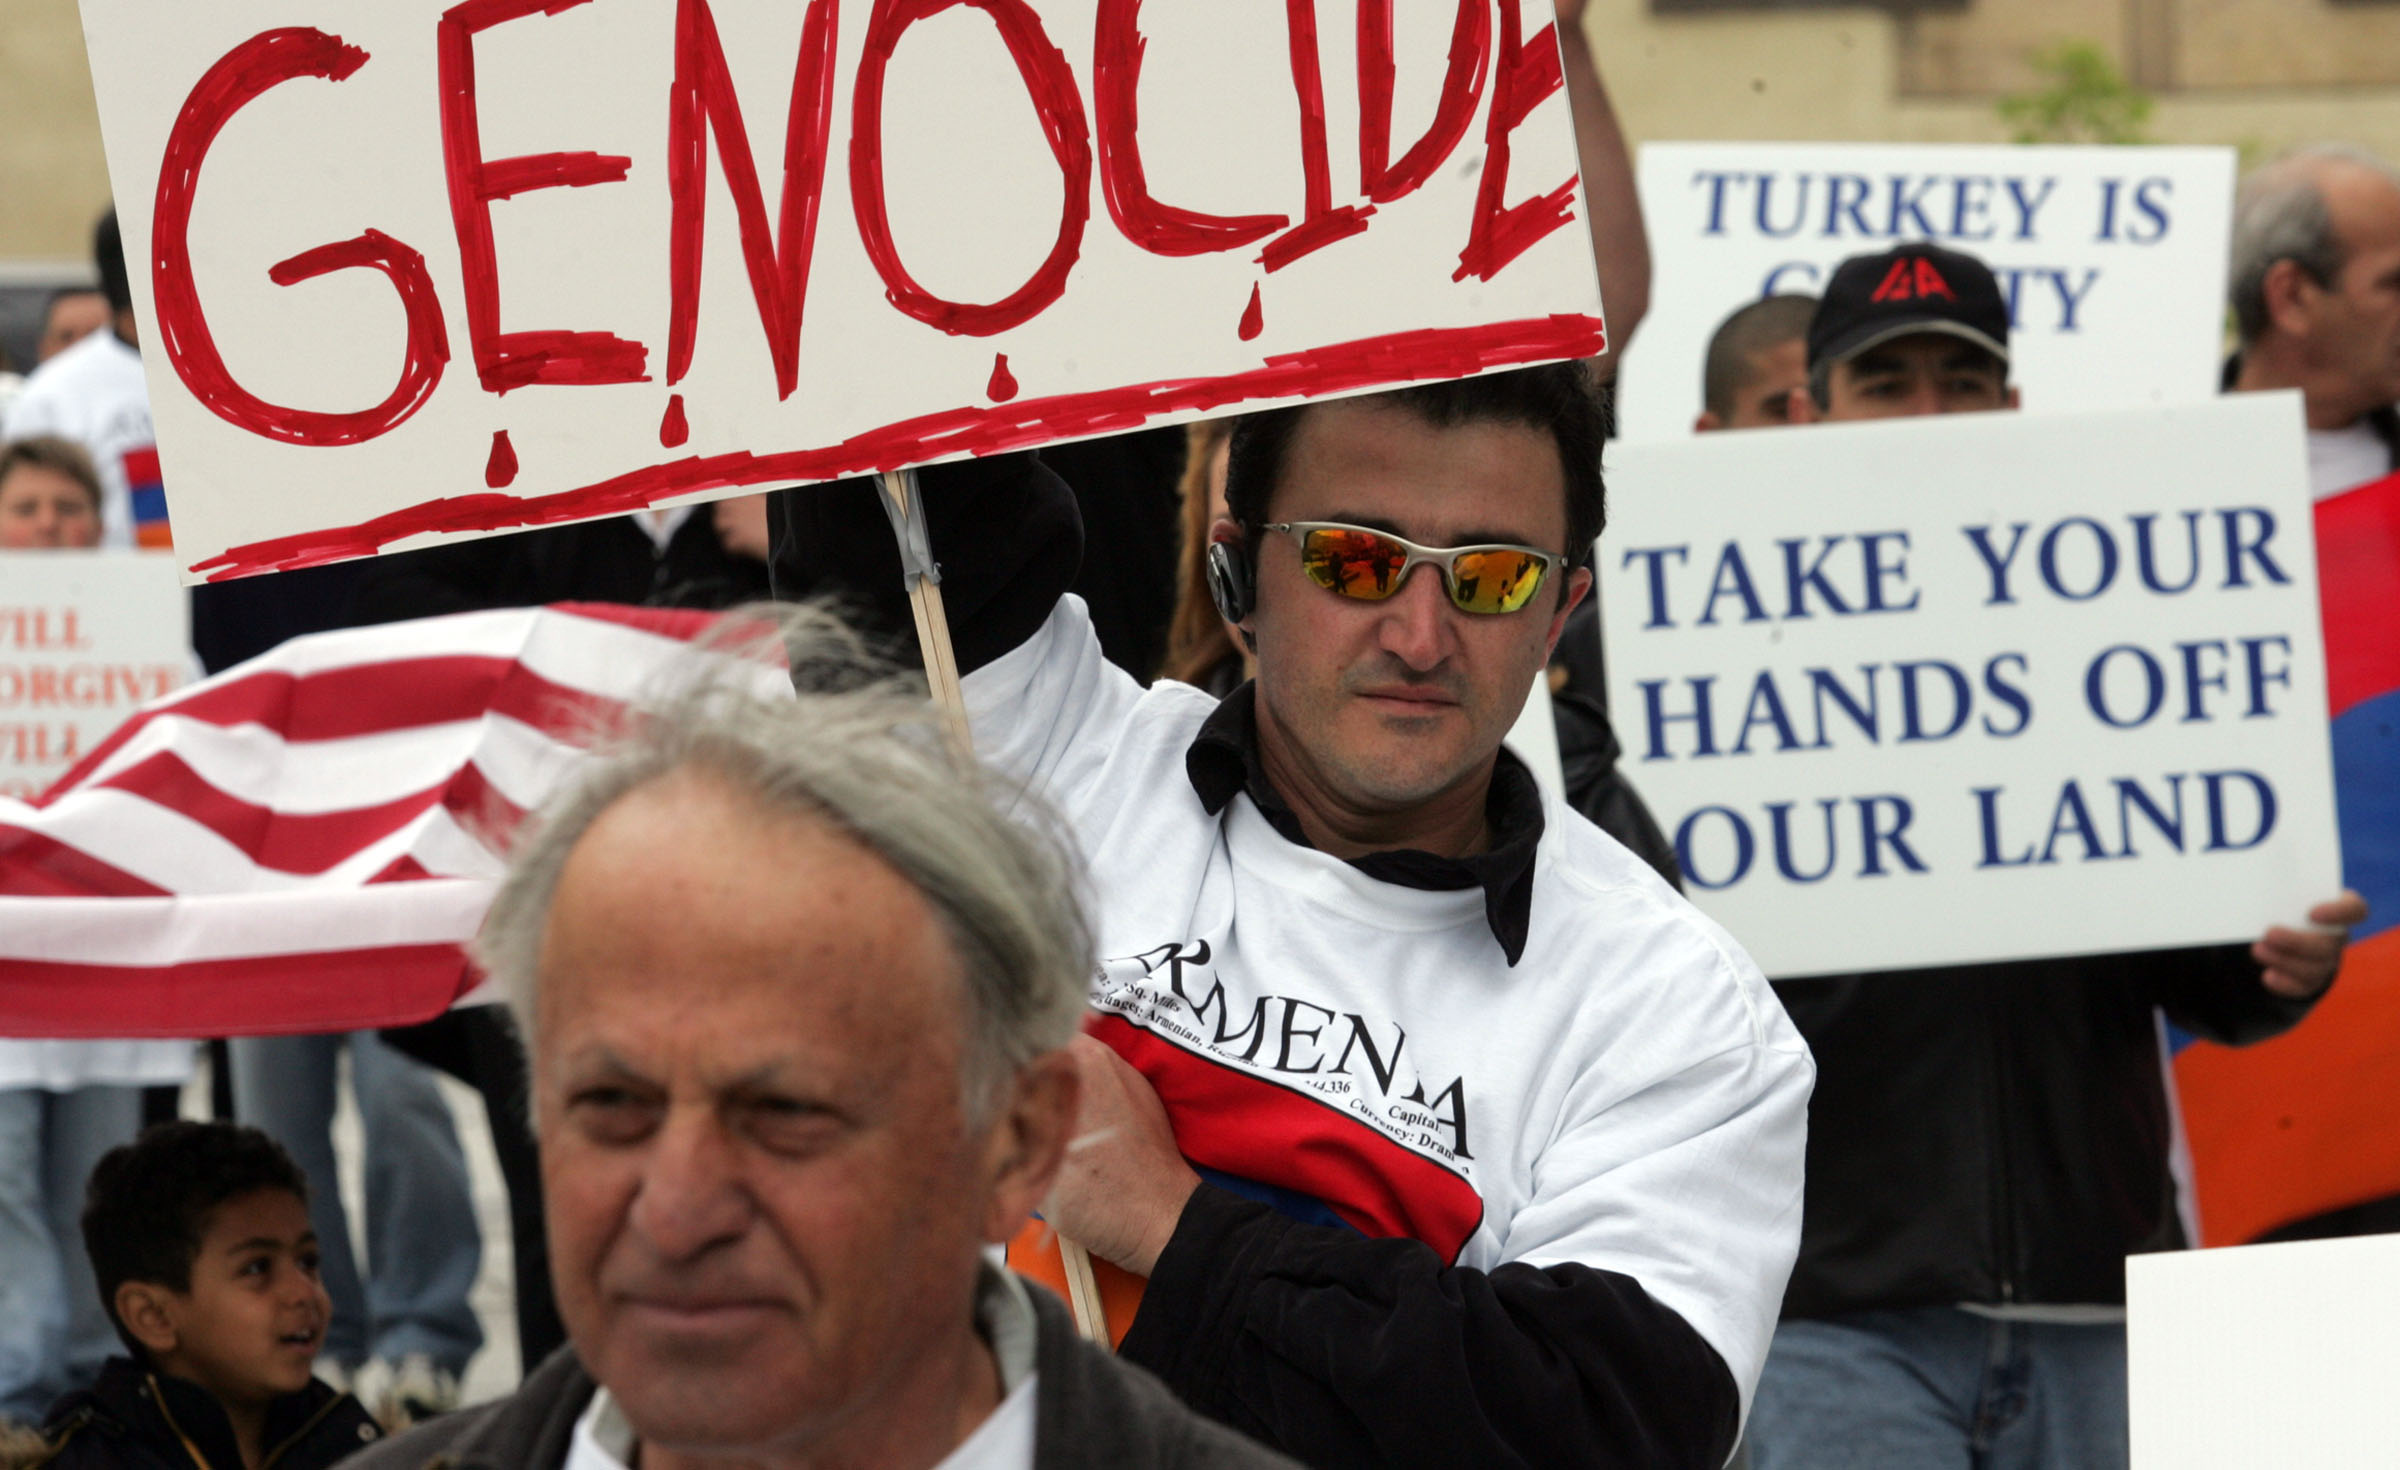 Kevork Joulhayan marches with others from the Armenian community during a demonstration at the Bennett Federal Building in Salt Lake City to mark the anniversary of the Ottoman Empire's slaughter of over one million Armenians in 1915. Joulhayan is a second generation survivor of the genocide, which is still not acknowledged by the Turkish government. Photo by Jason Olson